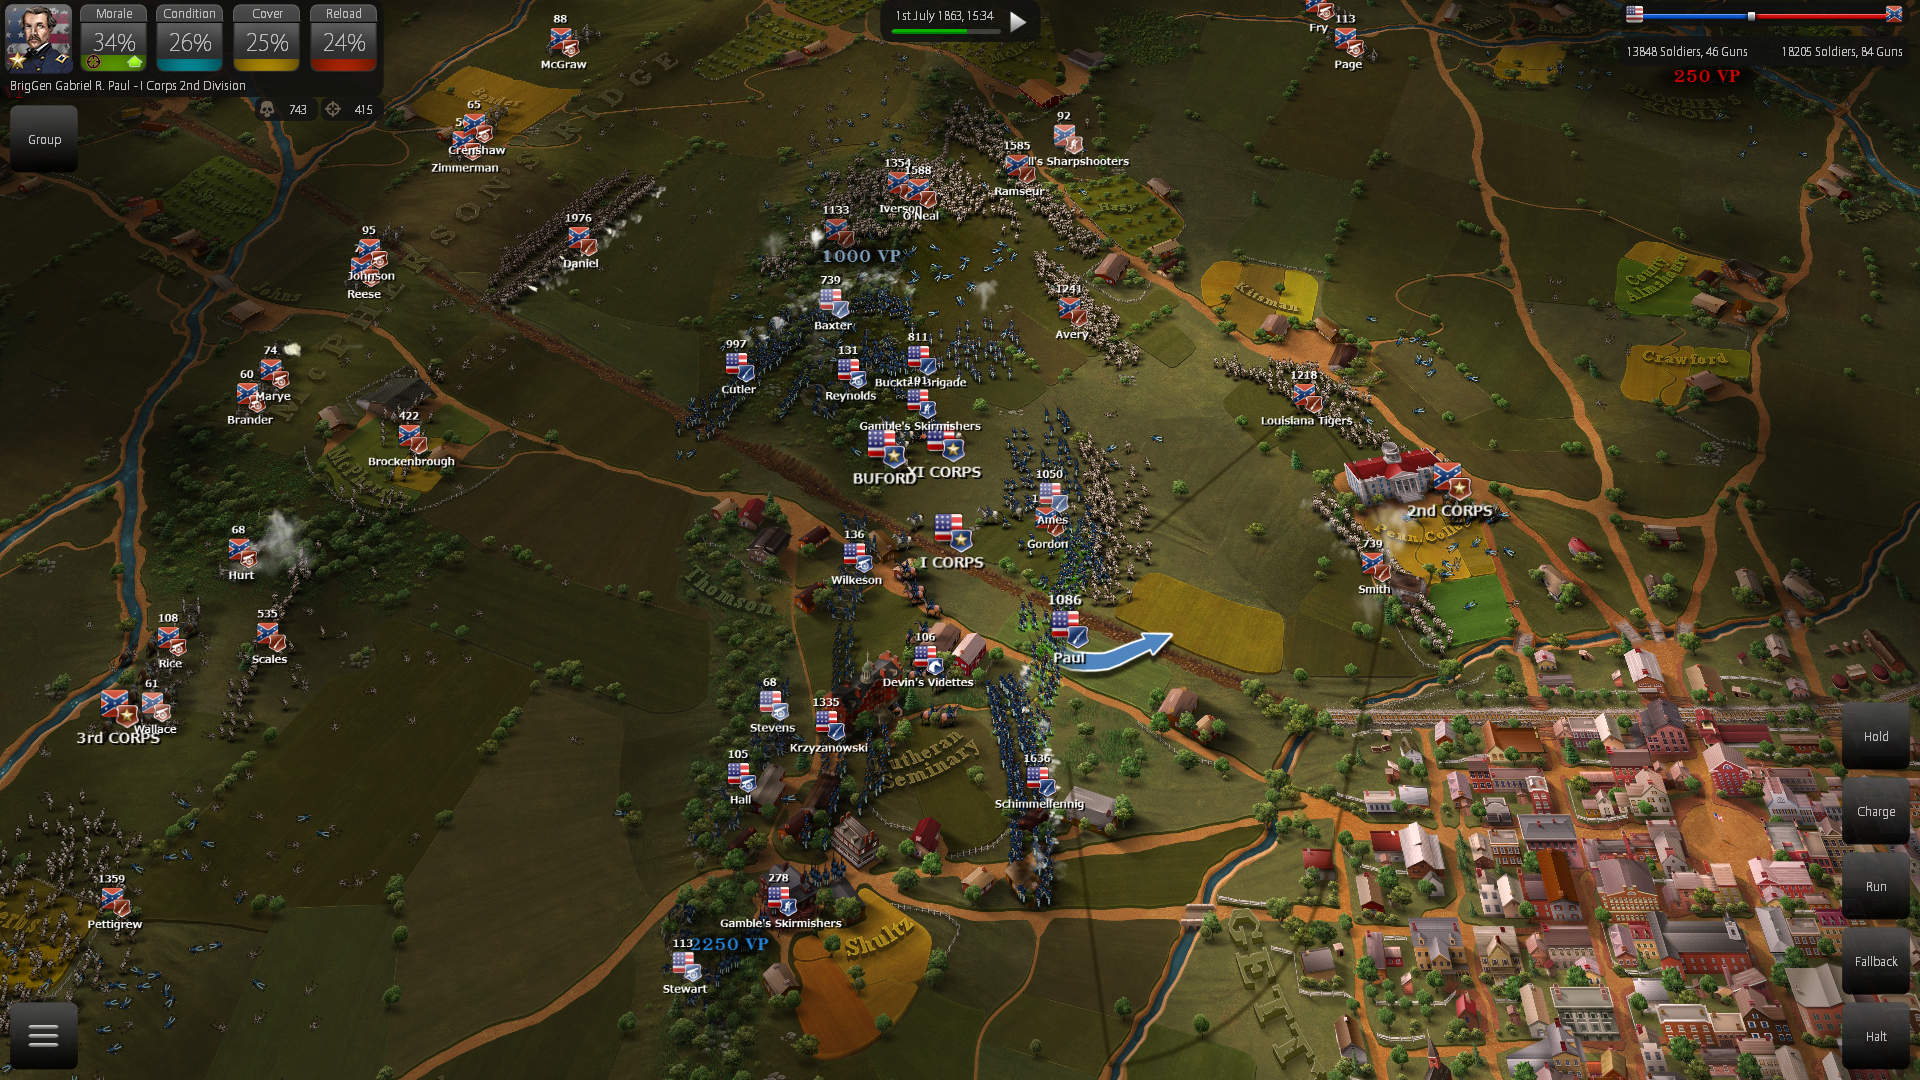 Responsive AI that presses on the attack with multiple charges at weak spots of your army.